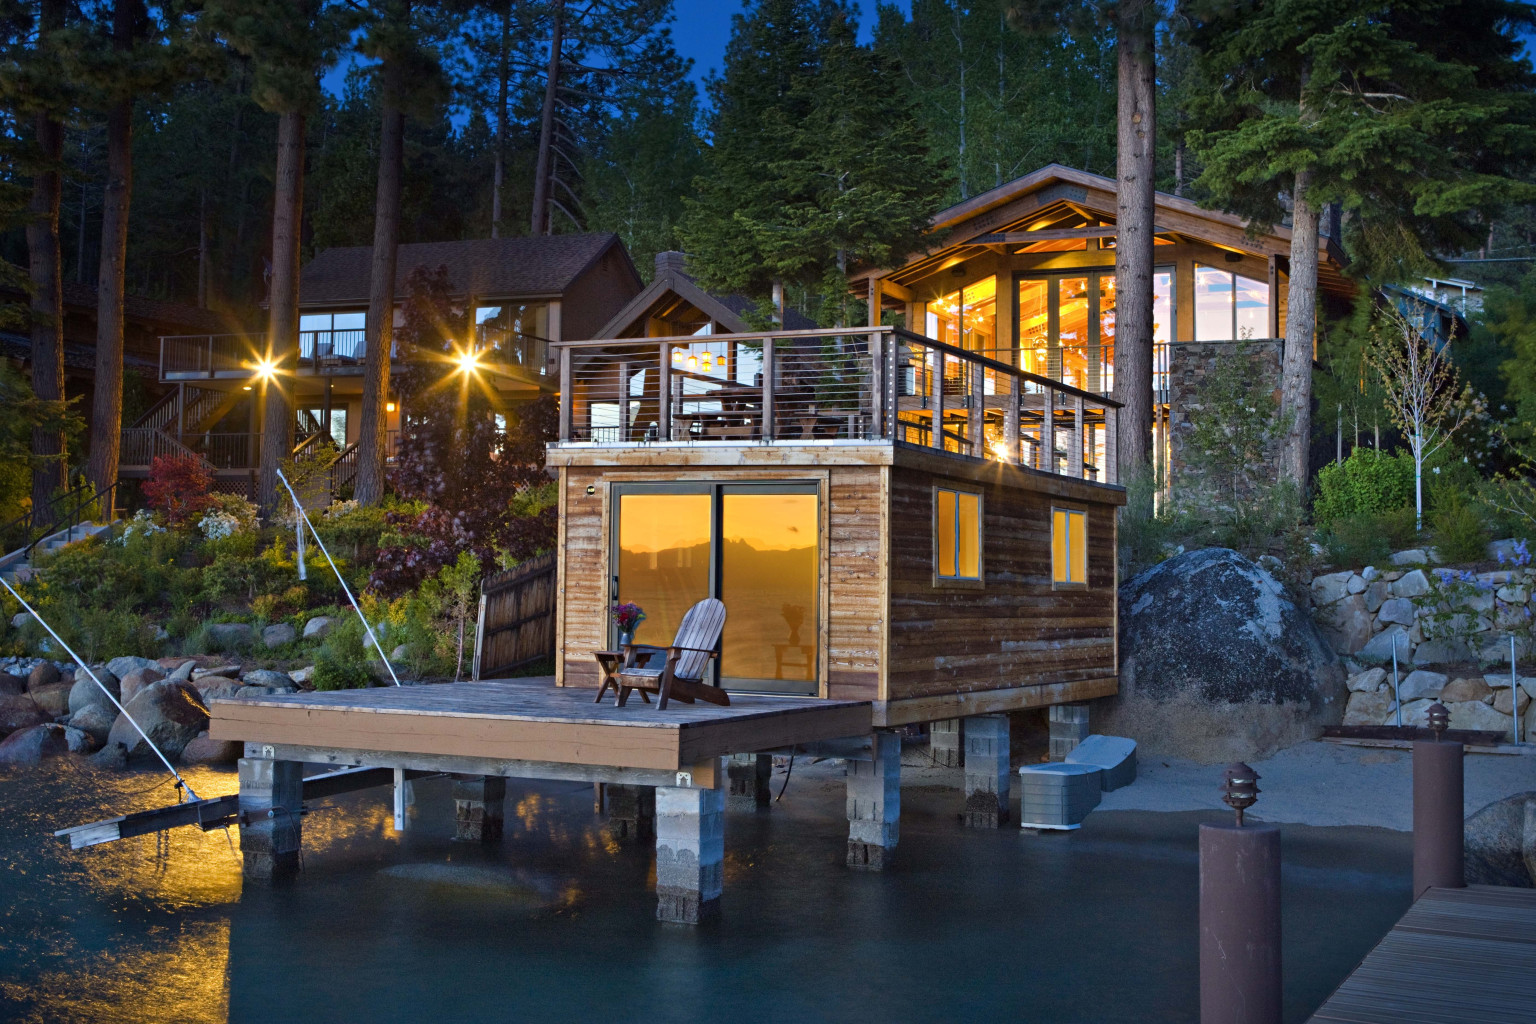 Stunning Glenbrook, Nevada Home Has A Pier, Boathouse And An Amazing View  Of Lake Tahoe (PHOTOS) | HuffPost